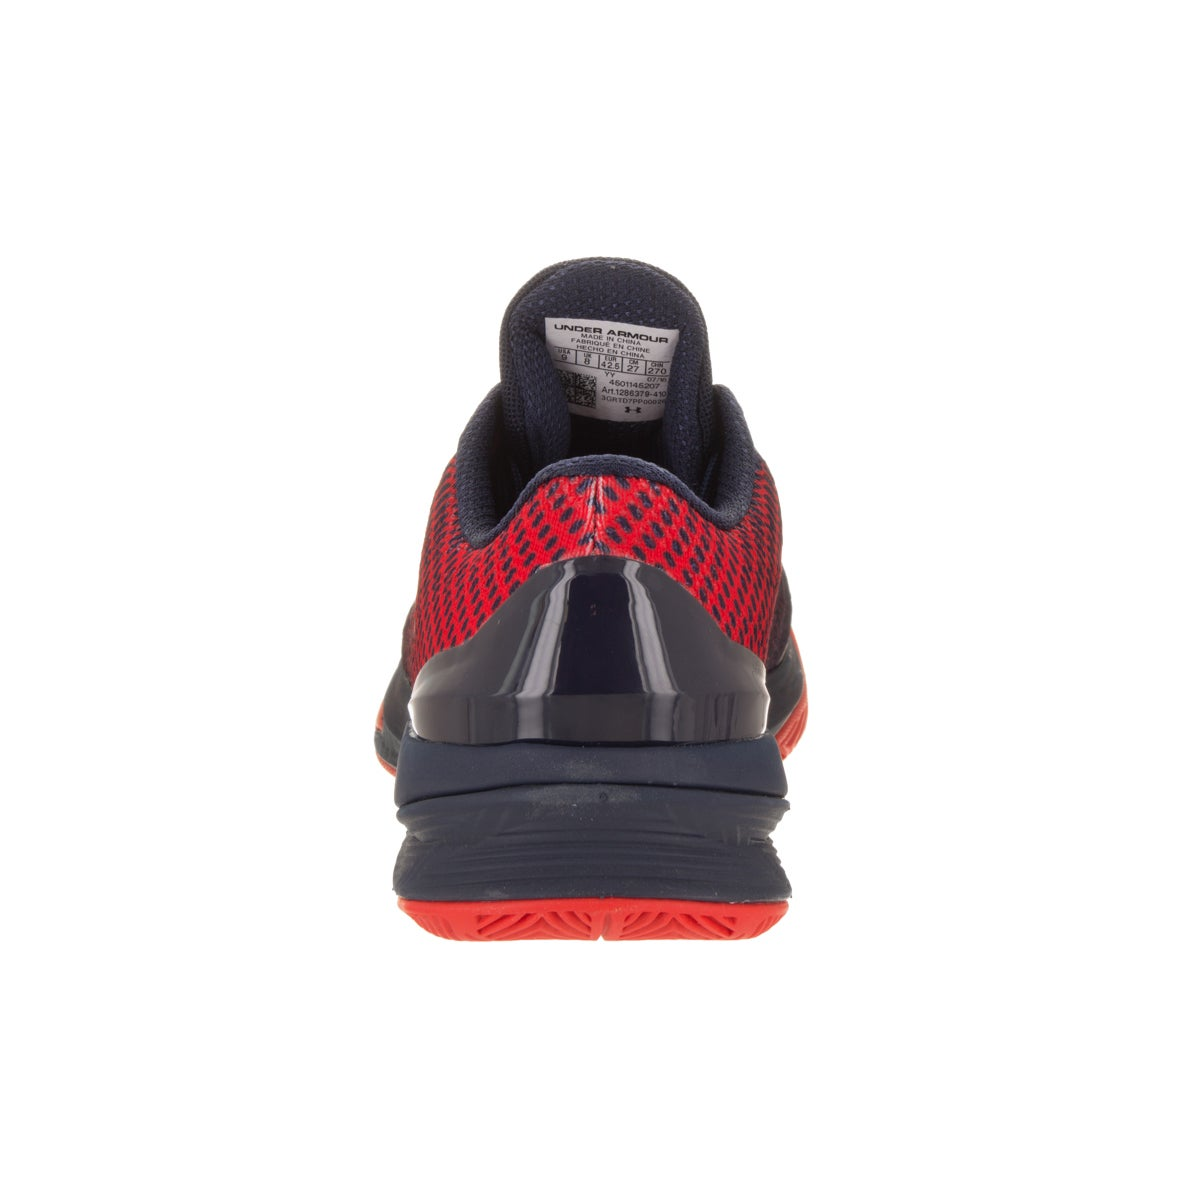 226fd0a0902 Shop Under Armour Men s Charged Controller Basketball Shoes - Free Shipping  Today - Overstock.com - 14964427